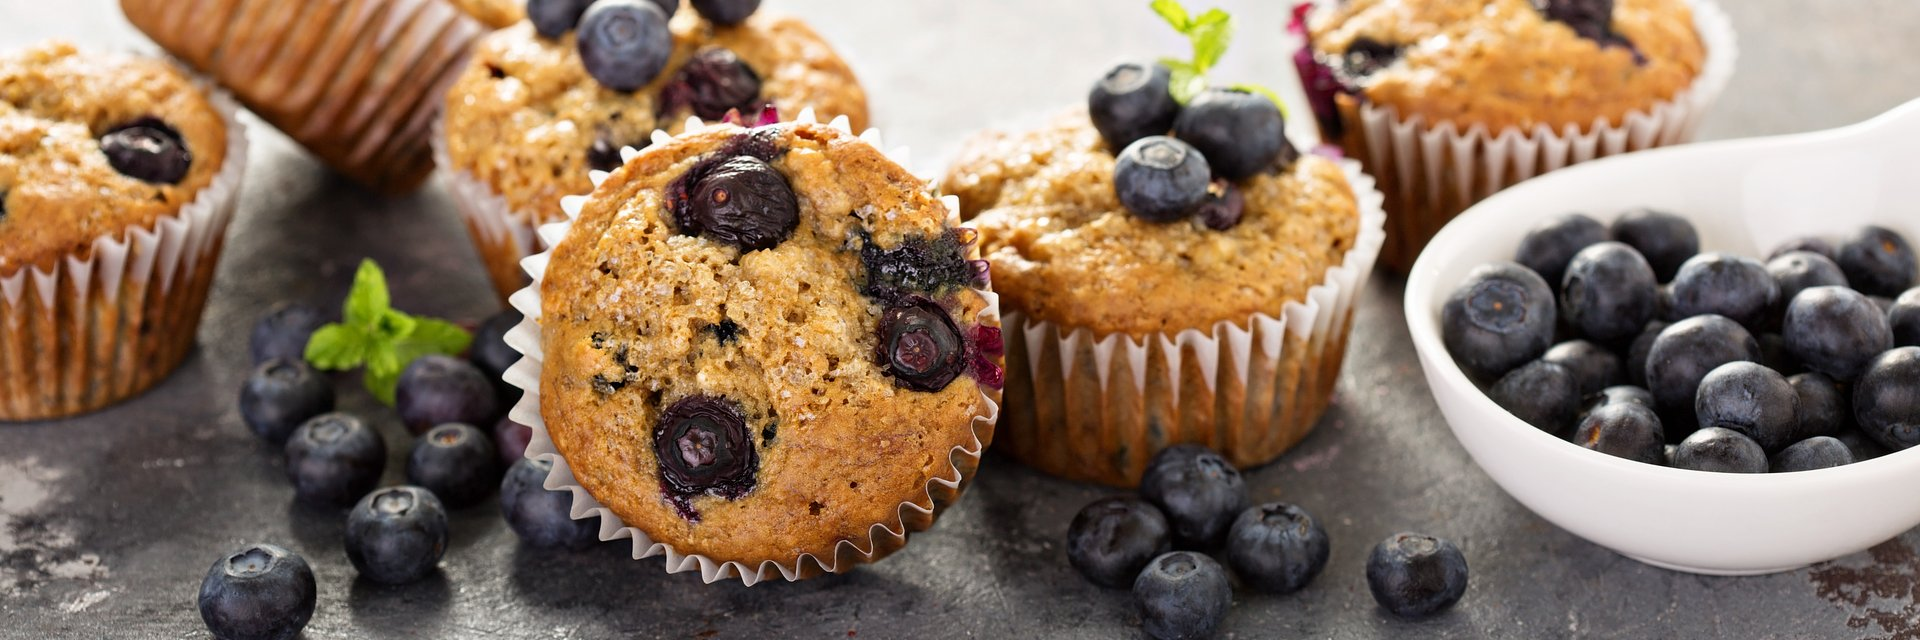 Health & Wellness Meets Indulgence – What consumers expect from bakeries today